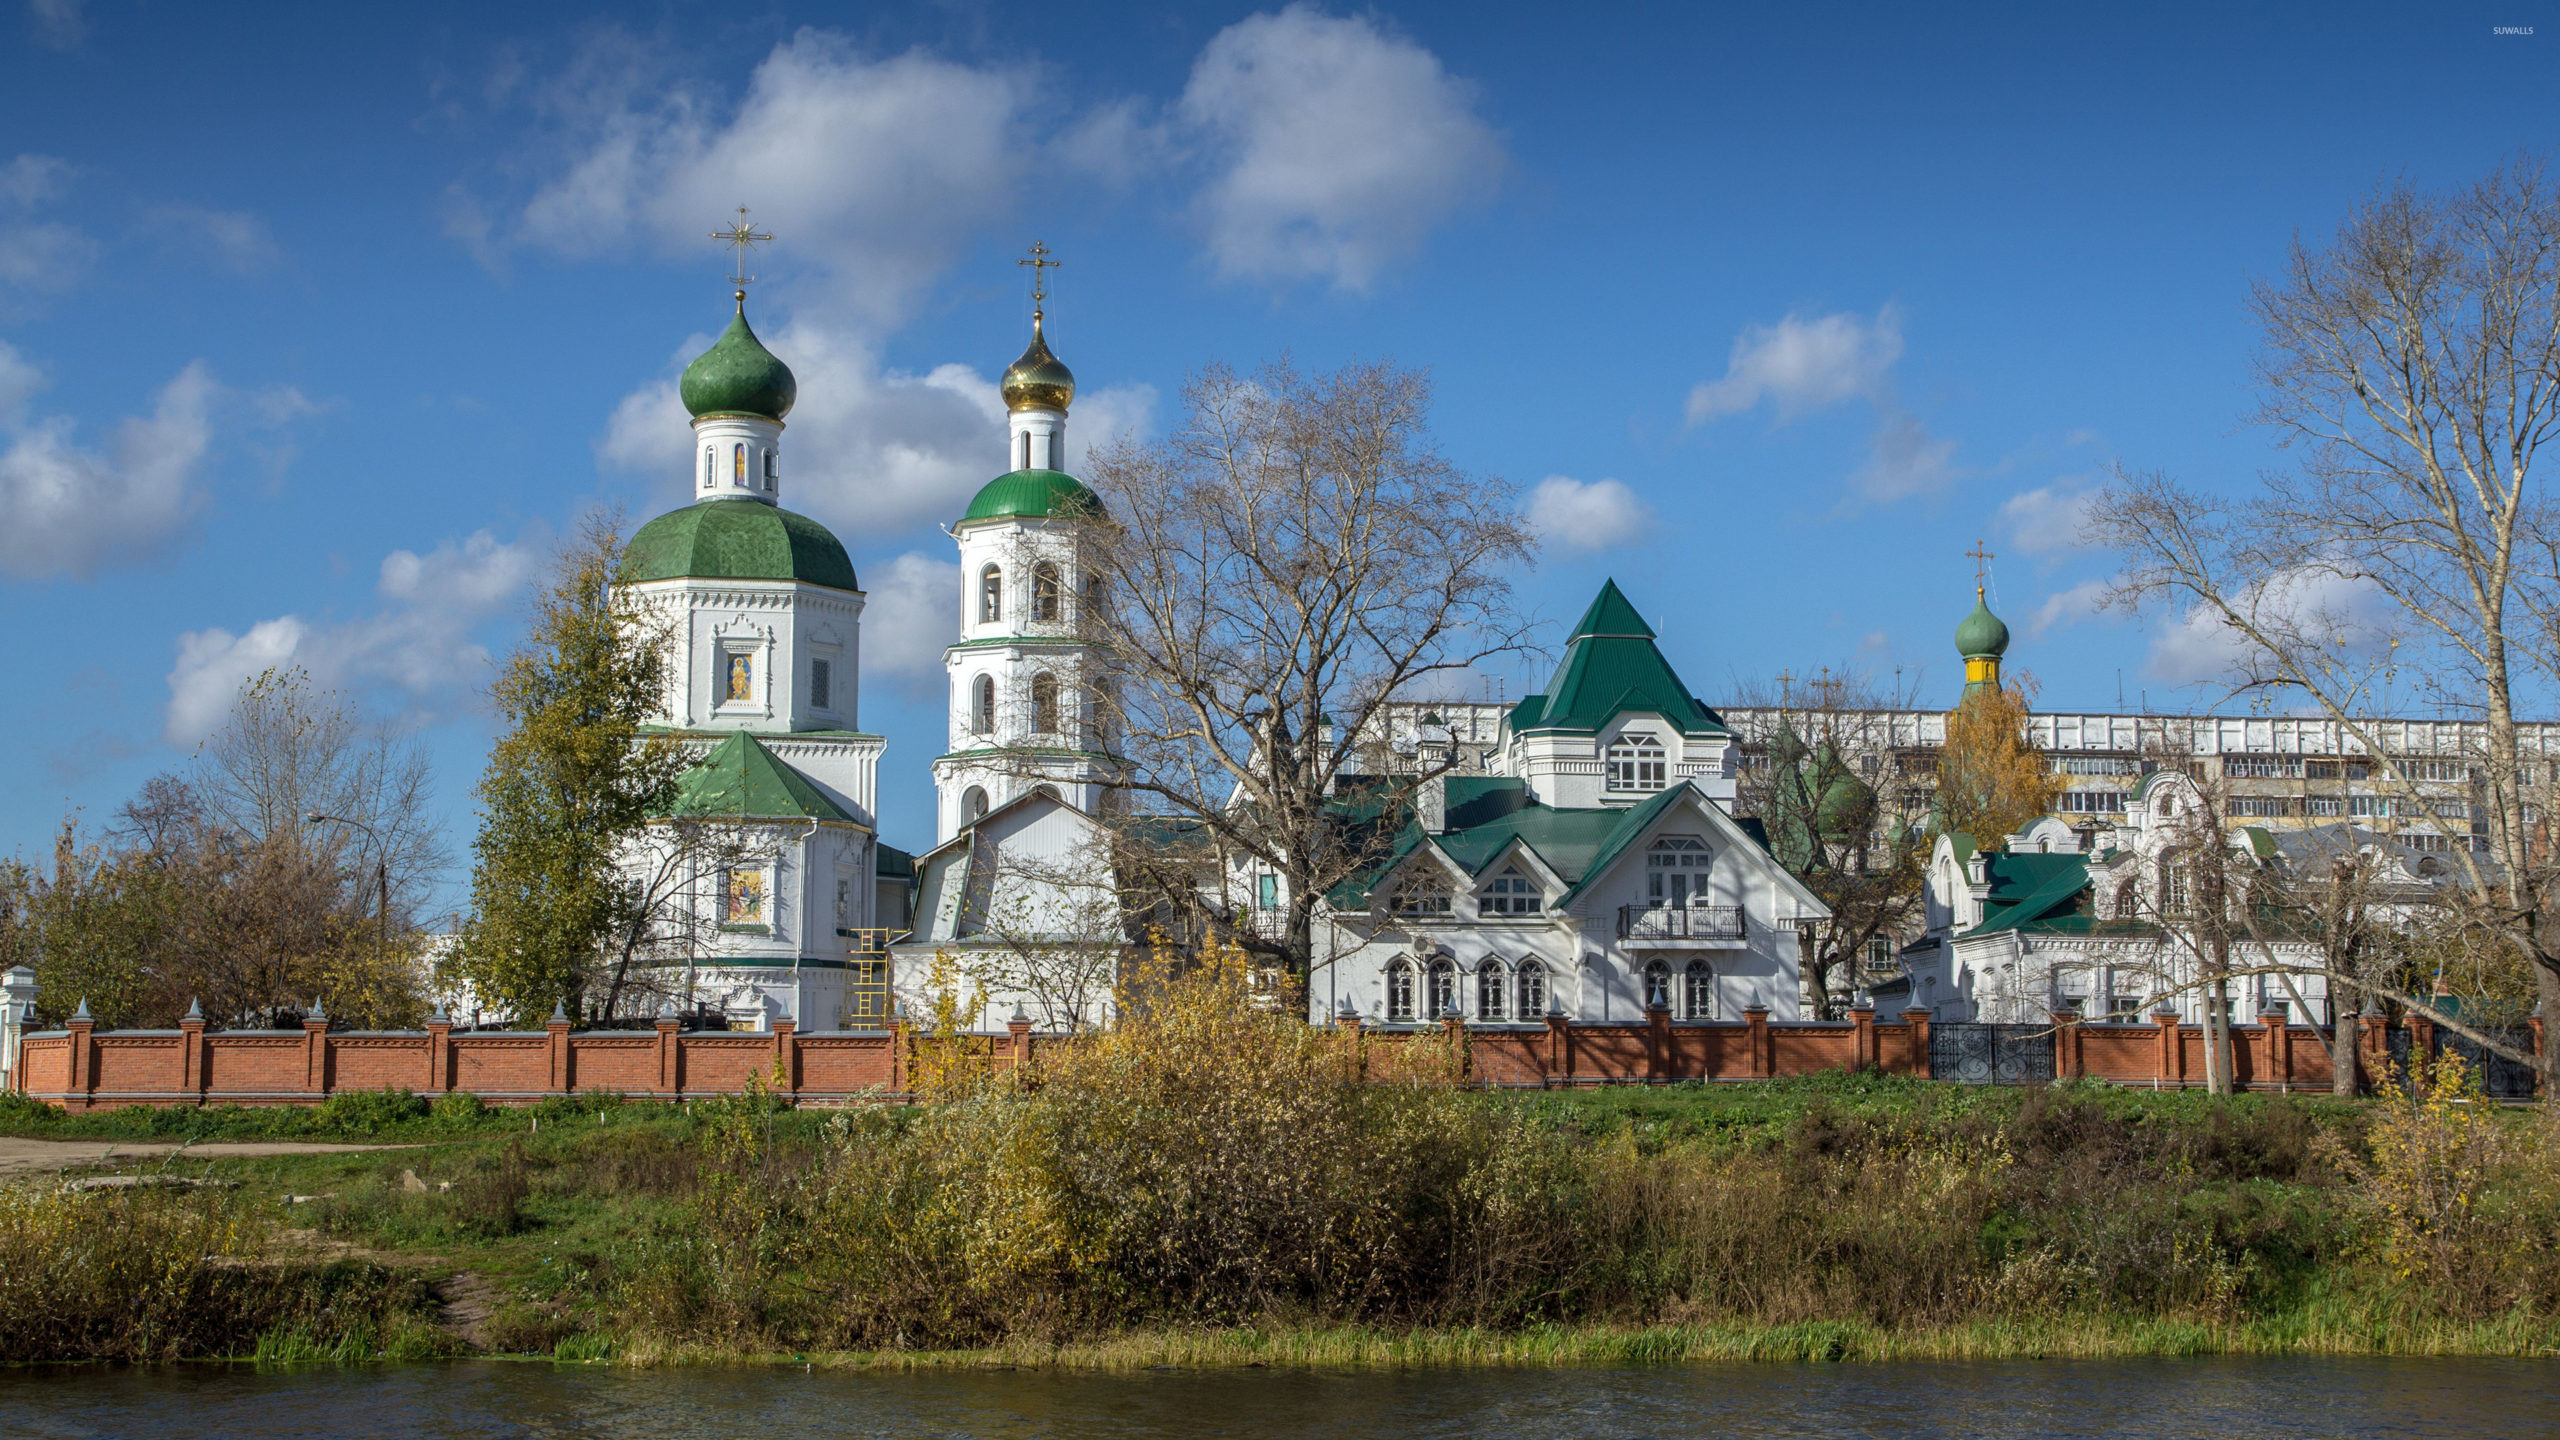 Orthodox-Church-On-The-River-Side-39471-3840×2160-Wallpaper